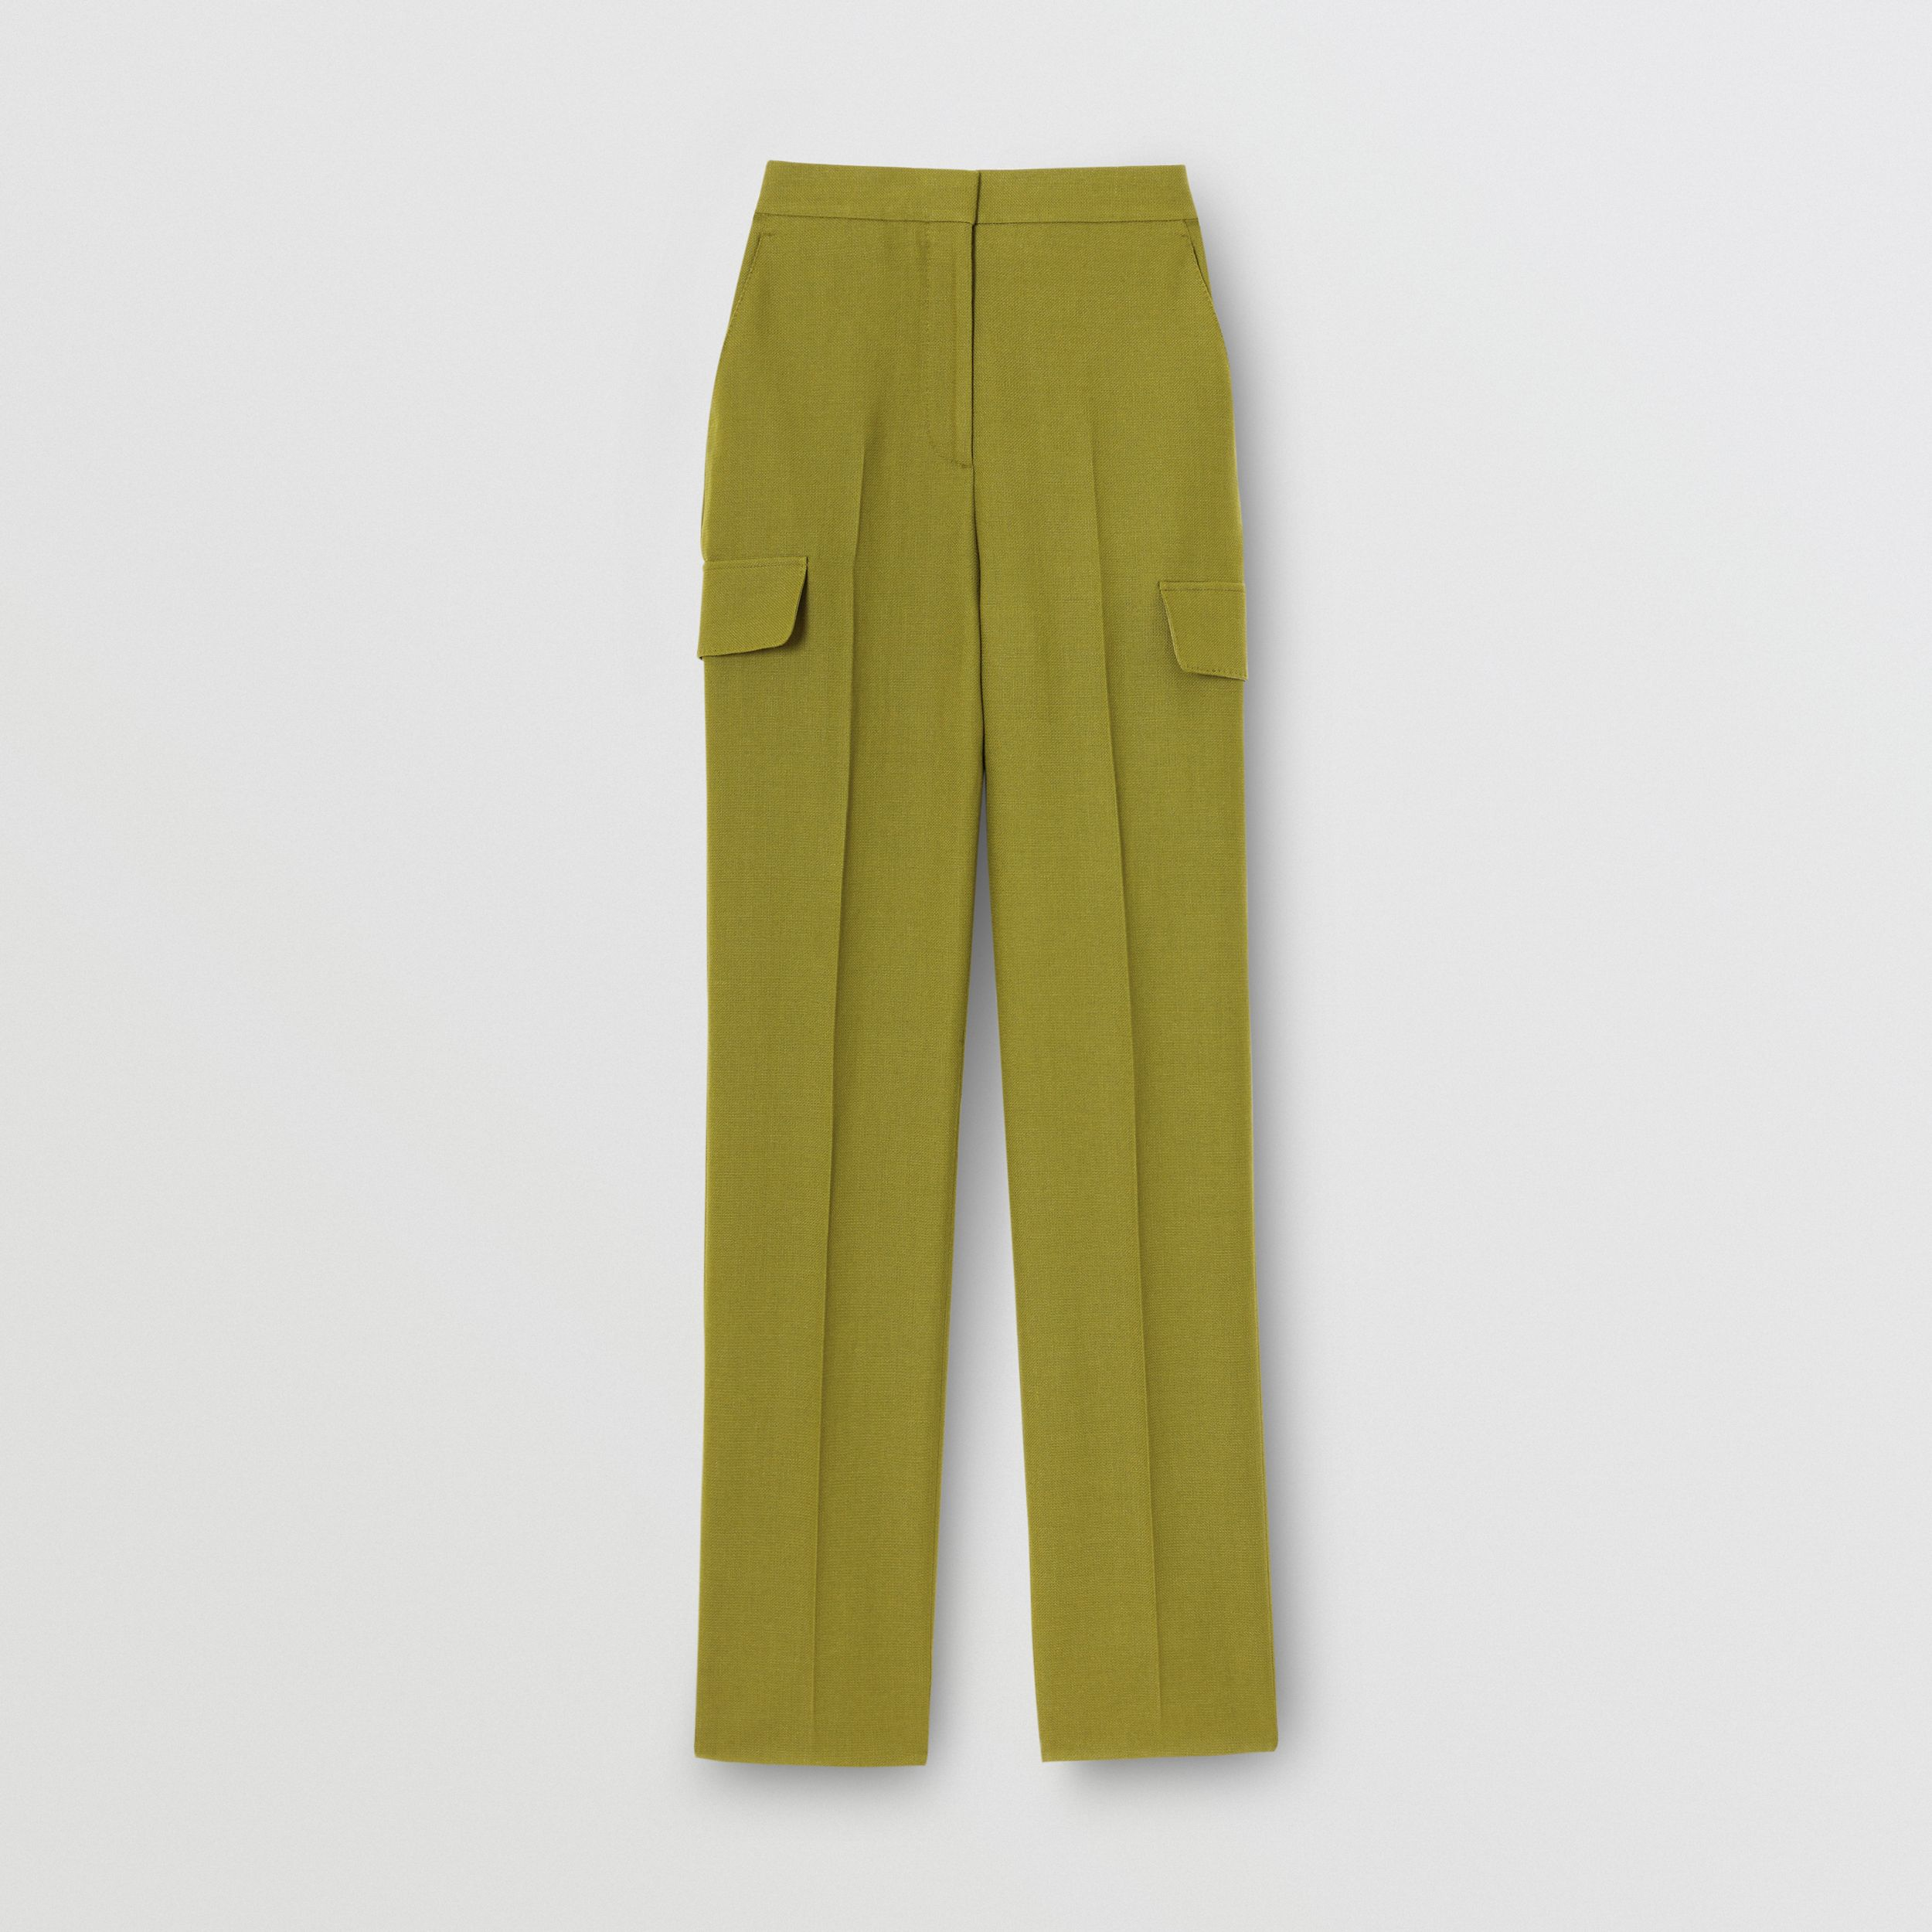 Wool Ramie Tailored Trousers in Juniper Green - Women | Burberry - 4